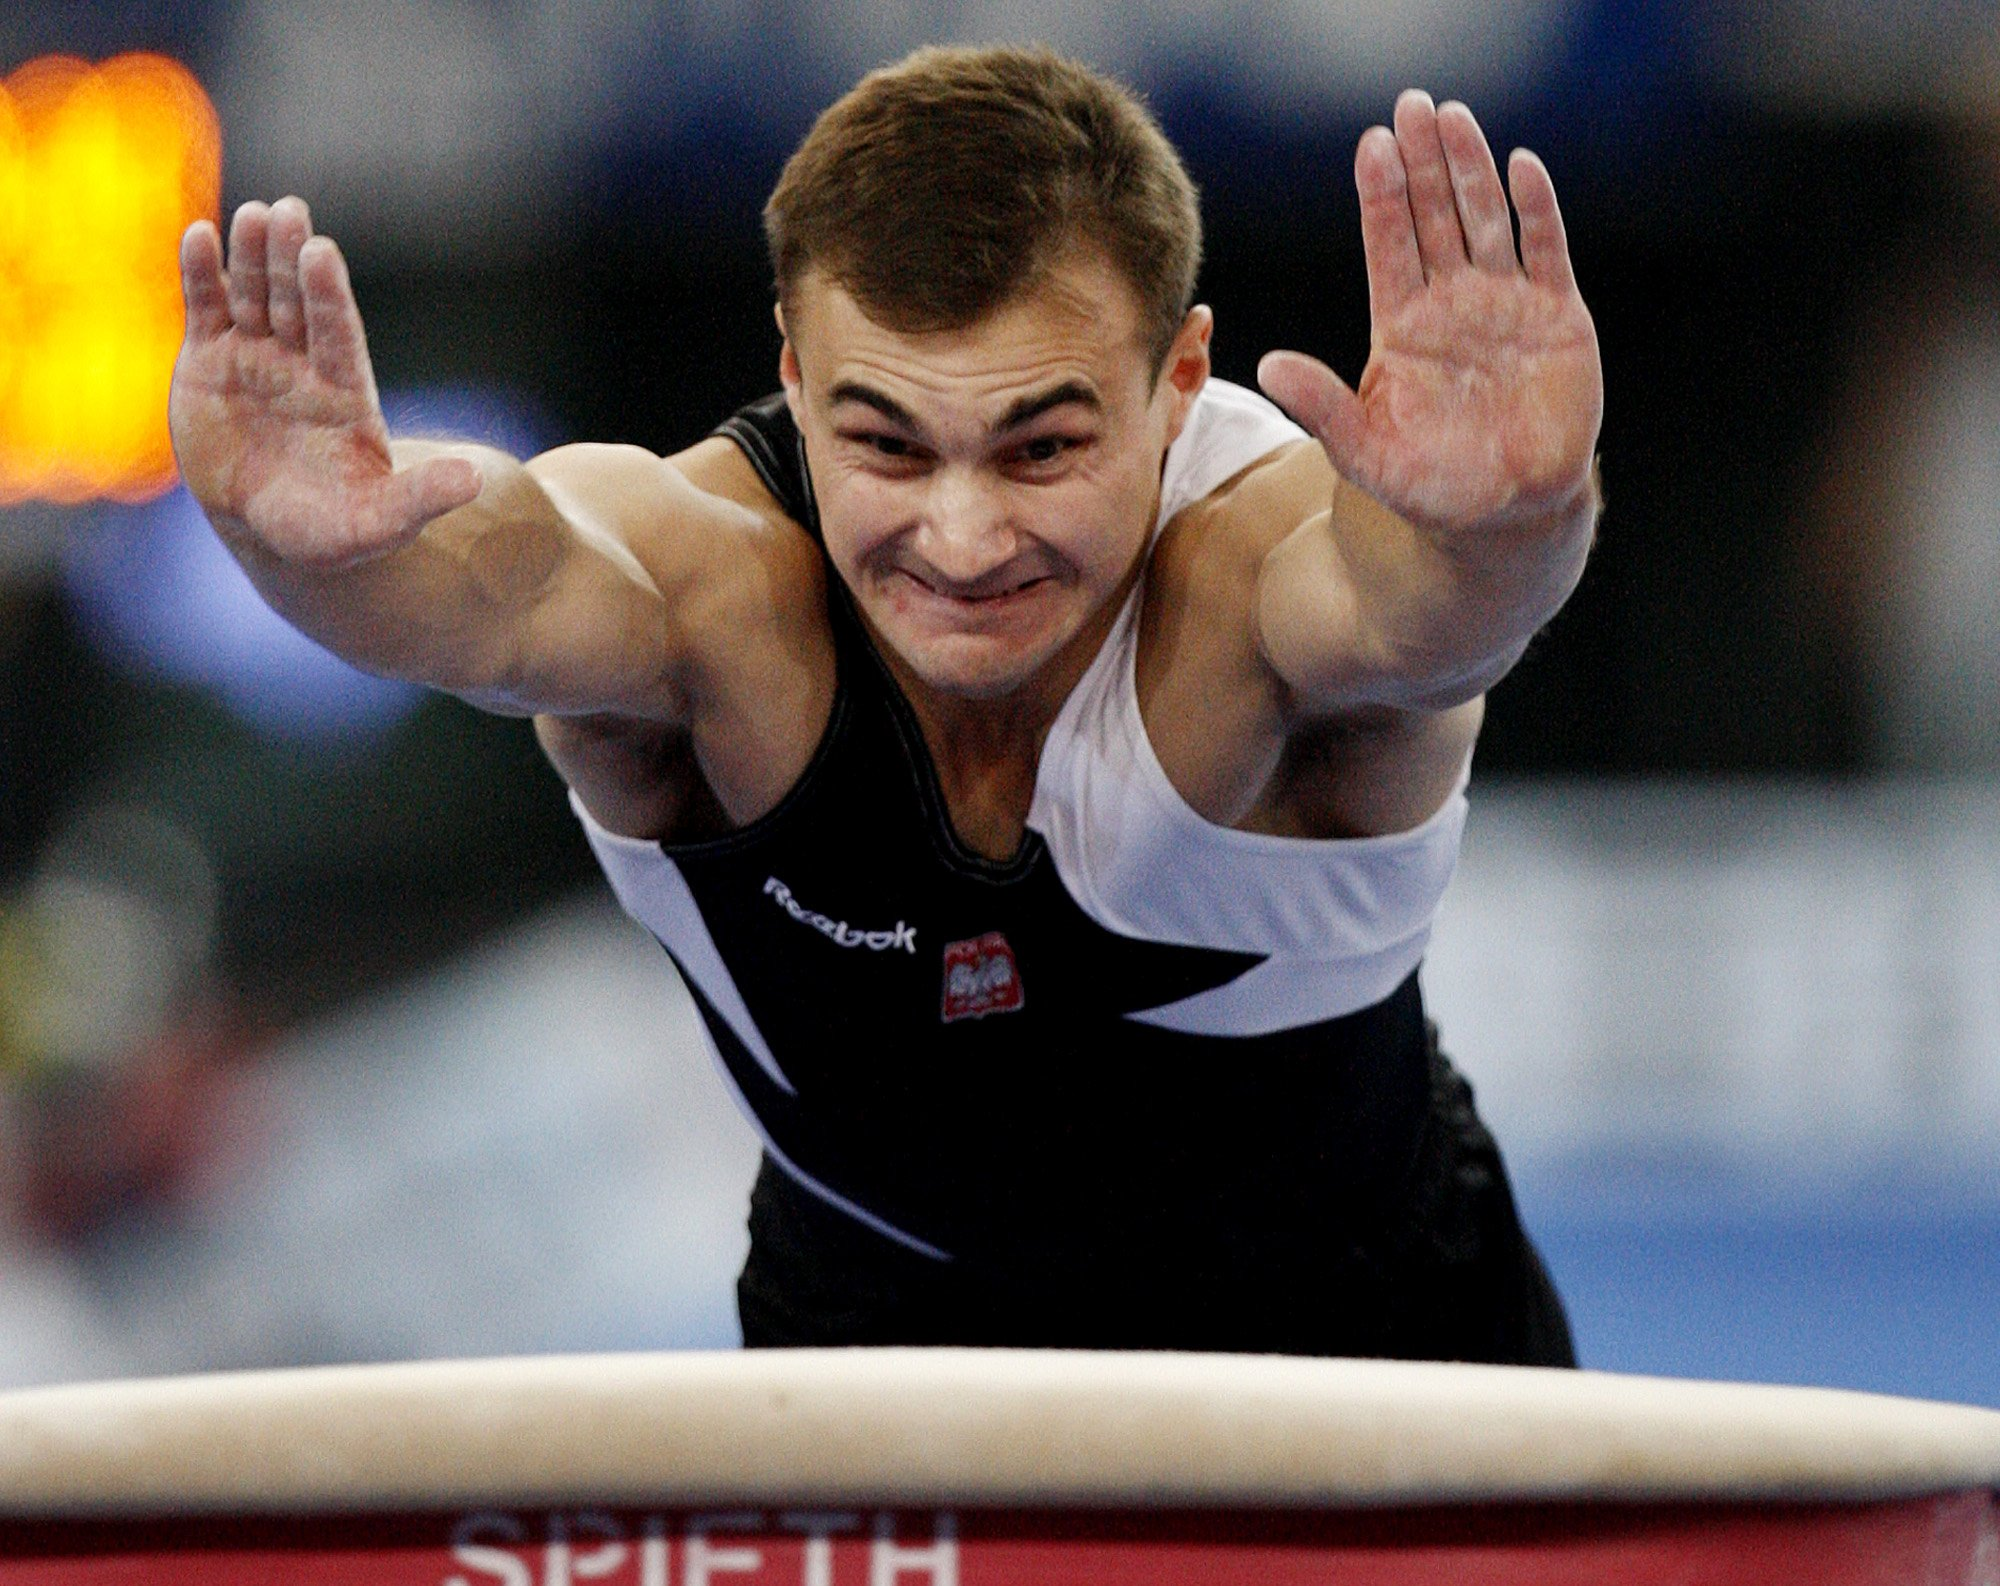 Poland's Leszek Blanik is seen in action to win the gold  medal in the men's vault final at the Gymnastics World Championships in Stuttgart, southern Germany, Sunday Sept. 9, 2007. (AP Photo/Michael Probst)